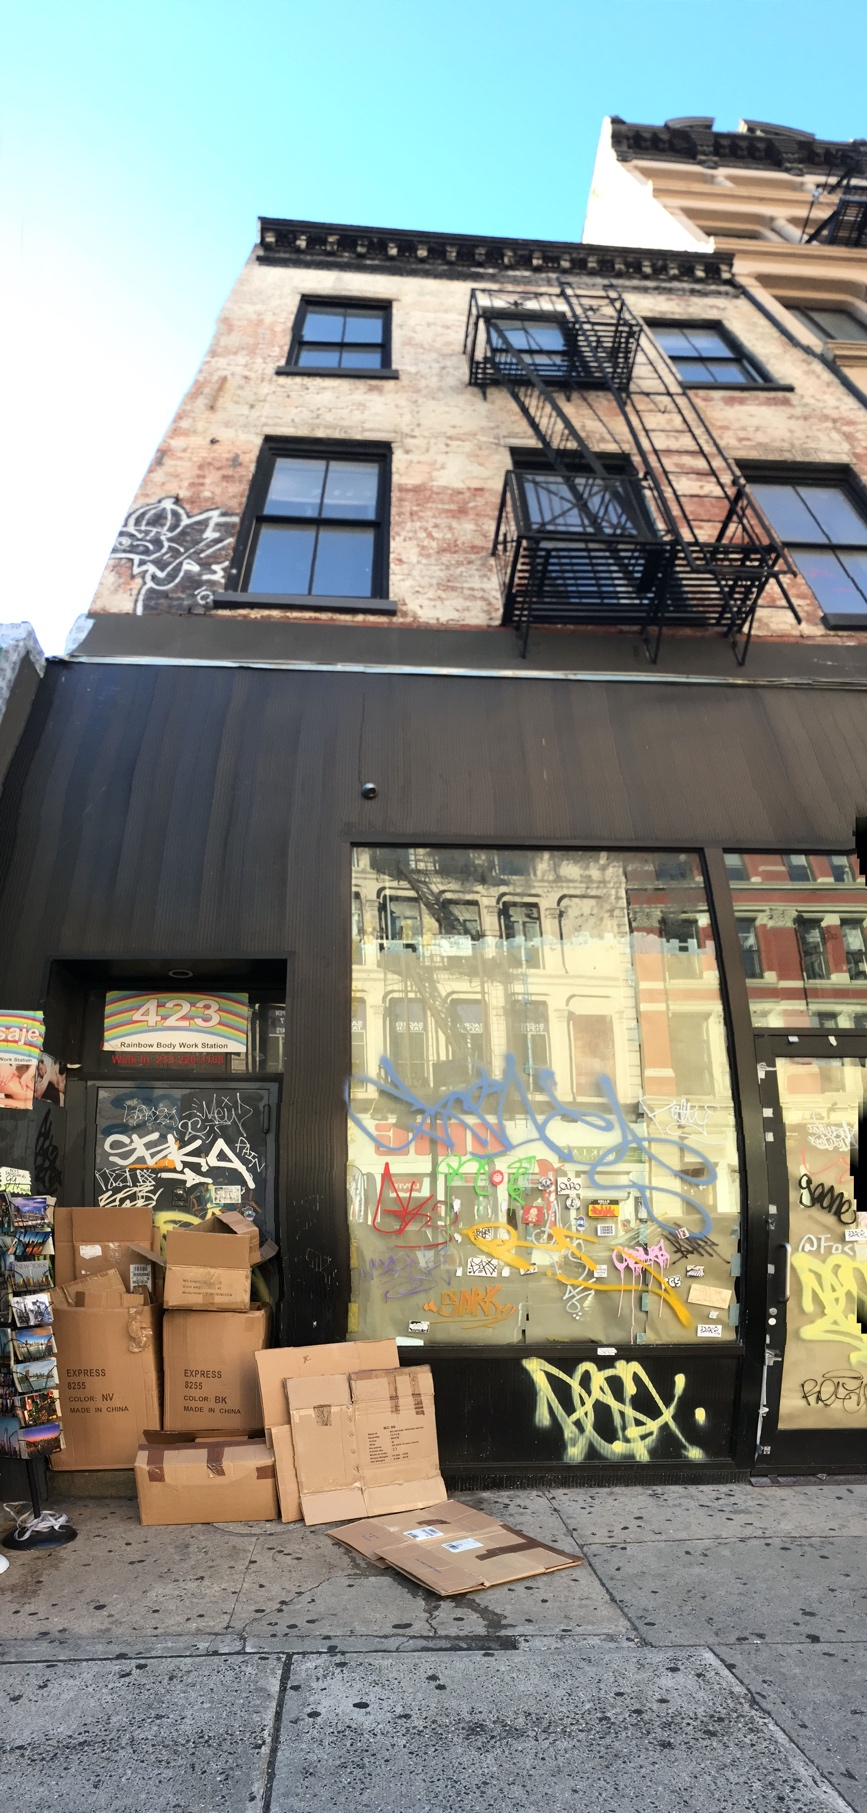 Steve Reich's loft at 423 Broadway in New York City where Drumming was composed and rehearsed.